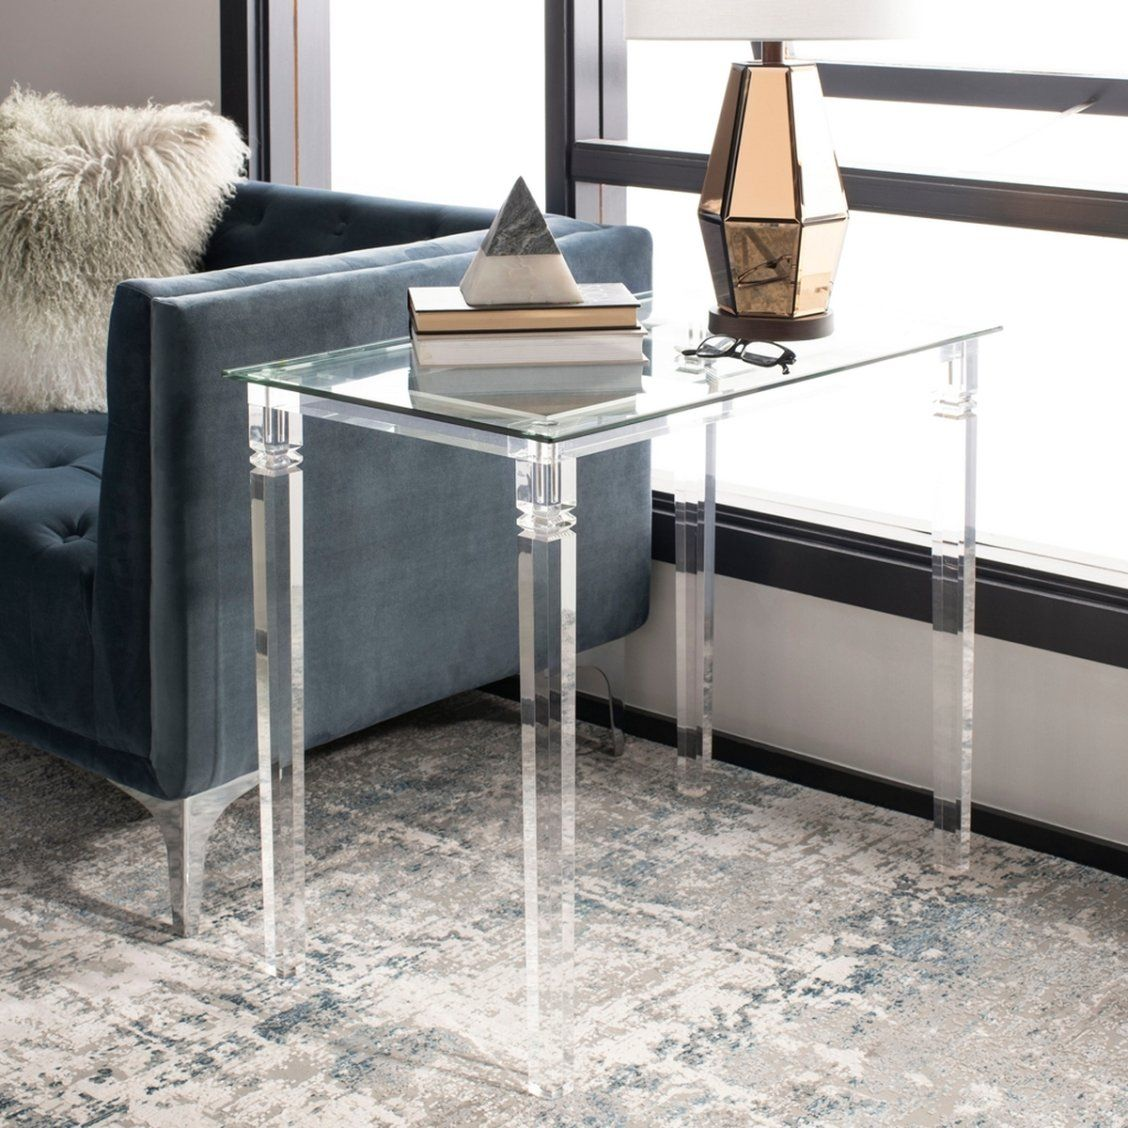 This Sophisticated Contemporary Acrylic Side Table Is An Instant Classic Designed For The Modern Tastemaker Acrylic Side Table Glass Top End Tables Side Table